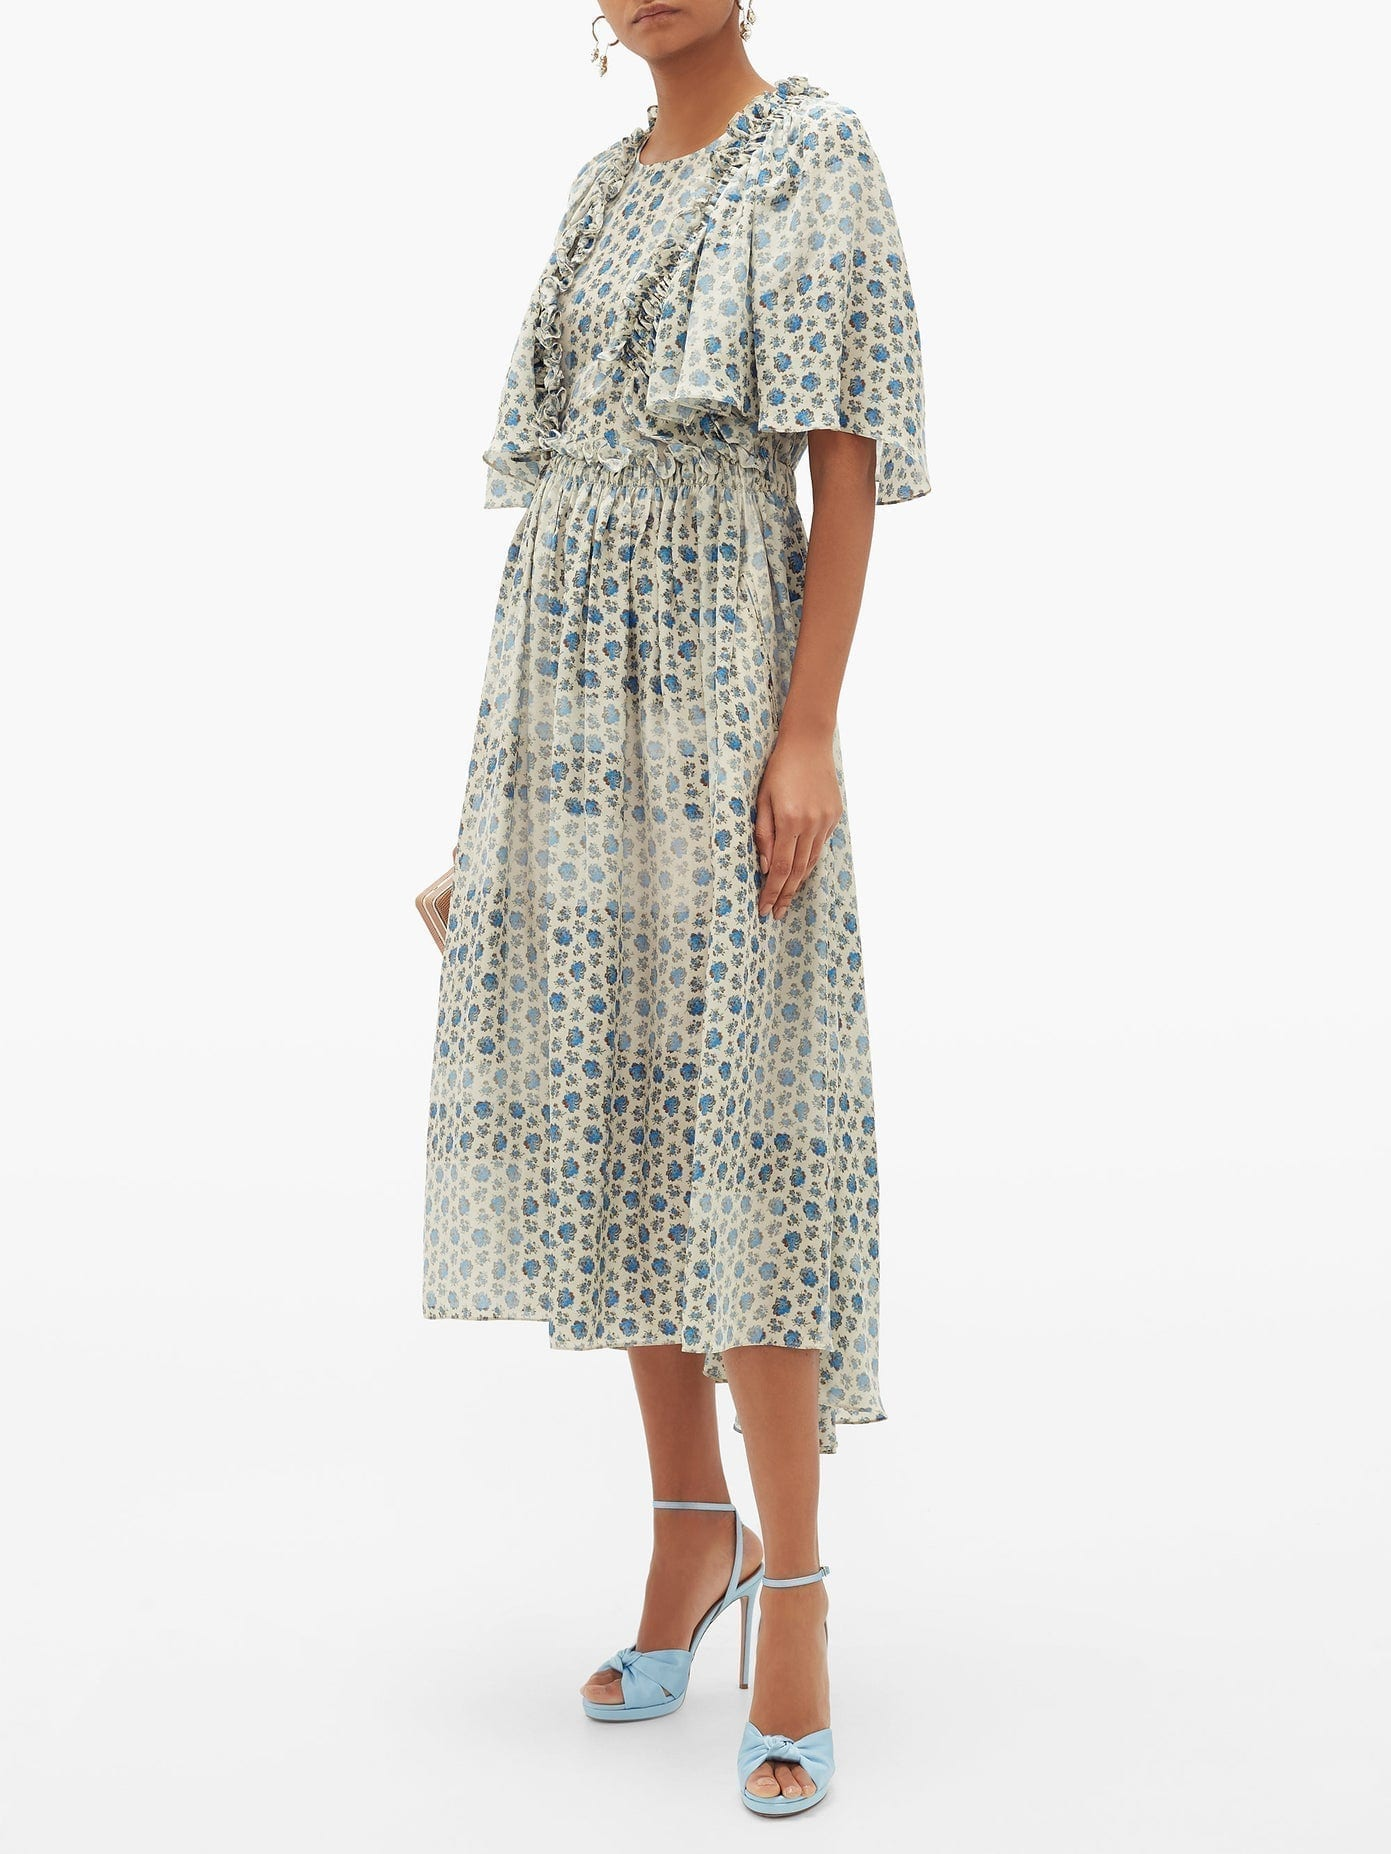 PREEN BY THORNTON BREGAZZI Malu Ruffled Floral-print Crepe Dress